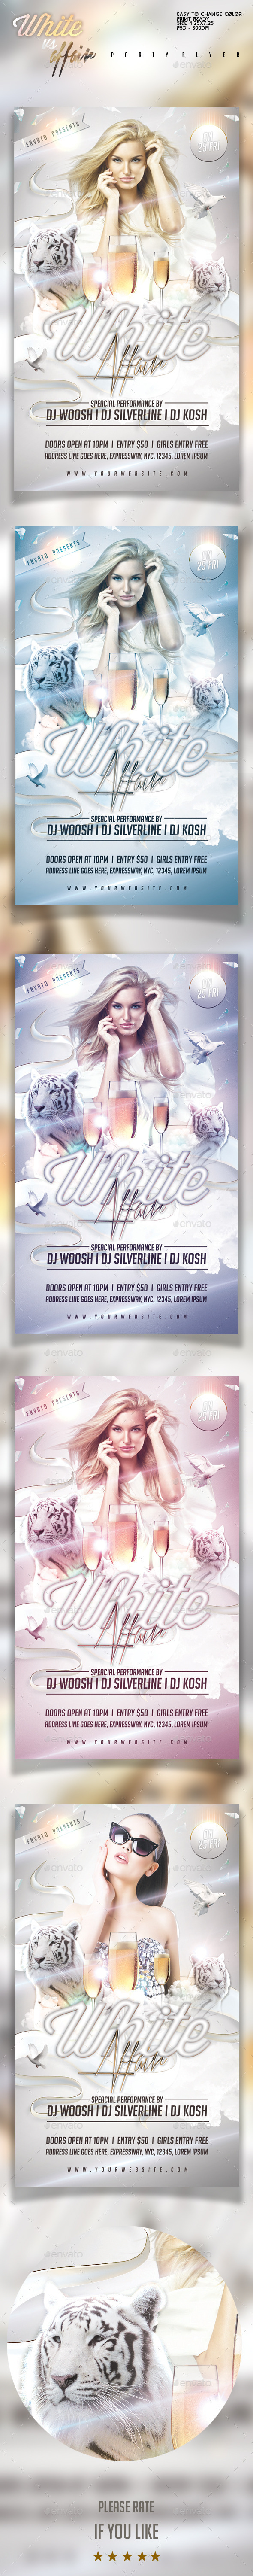 White Affair Party Flyer Template - Clubs & Parties Events